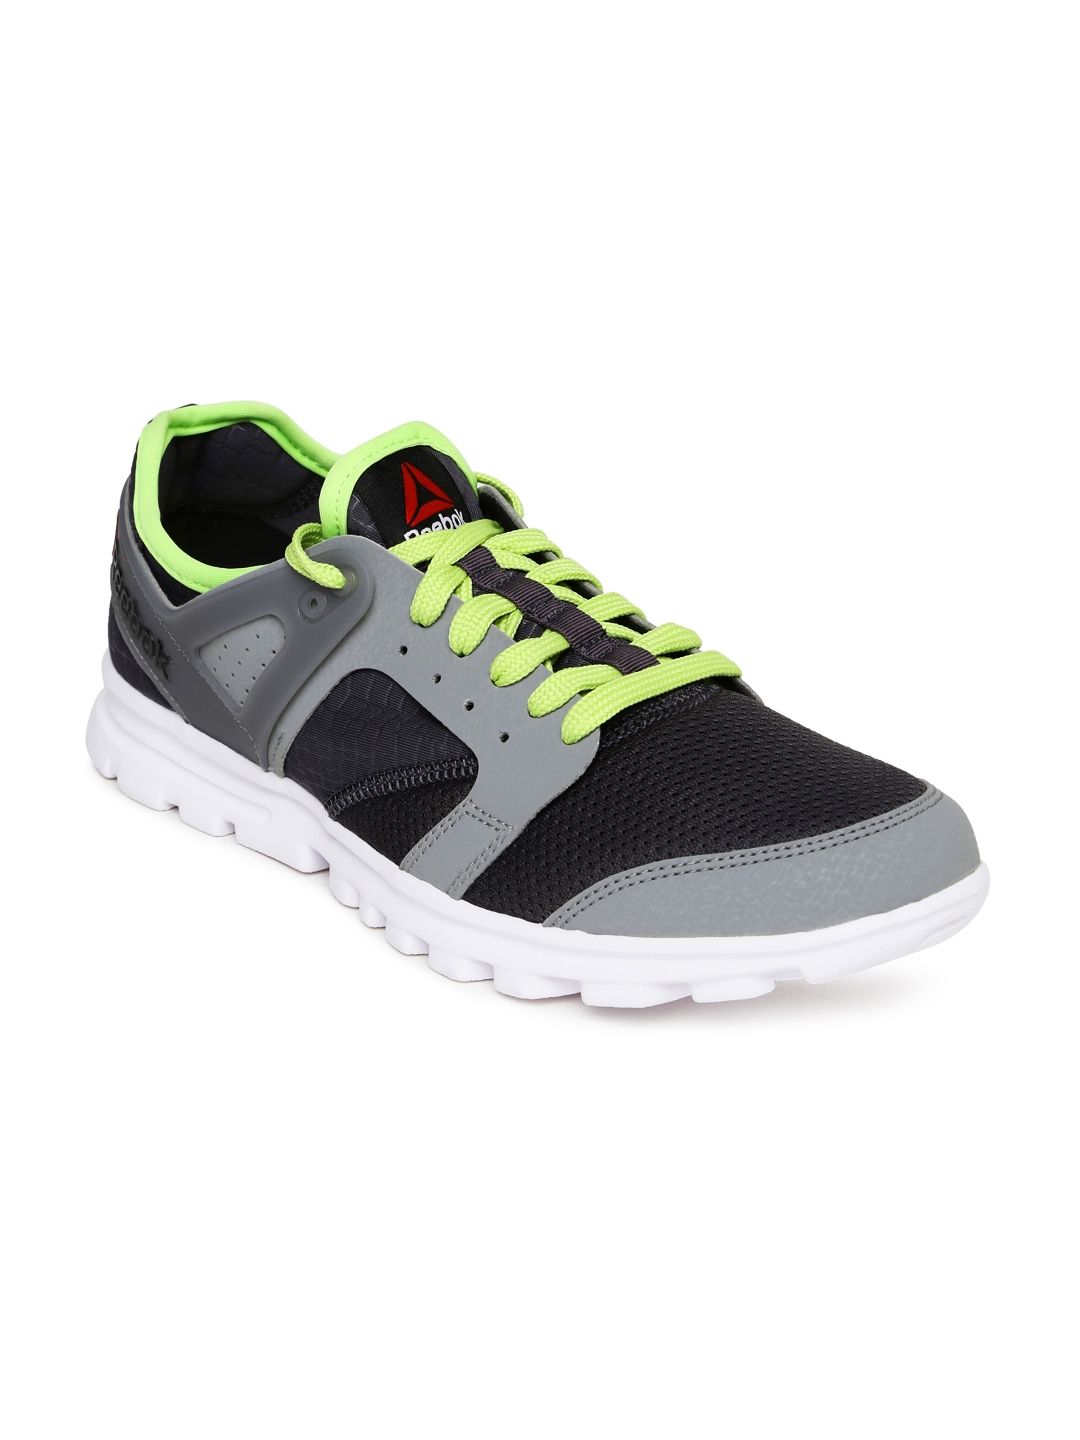 94be783d5bafae Buy Reebok Men Grey Amaze Running Shoes - Sports Shoes for Men ...